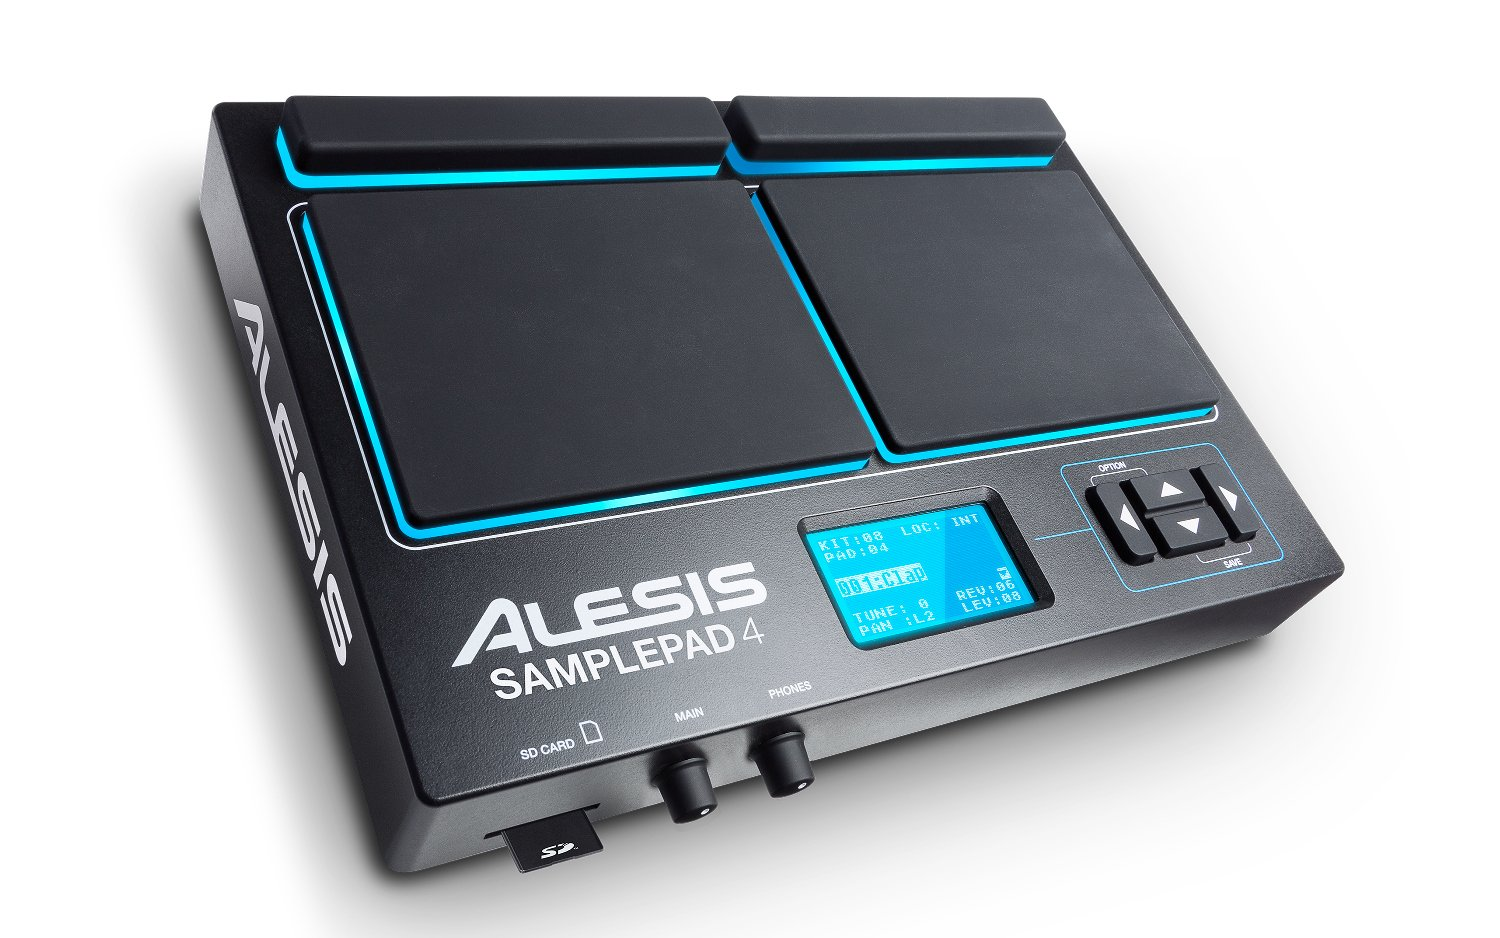 Alesis SamplePad 4 Electronic Multi-Pad Drum Instrument SAMPLE-PAD-4